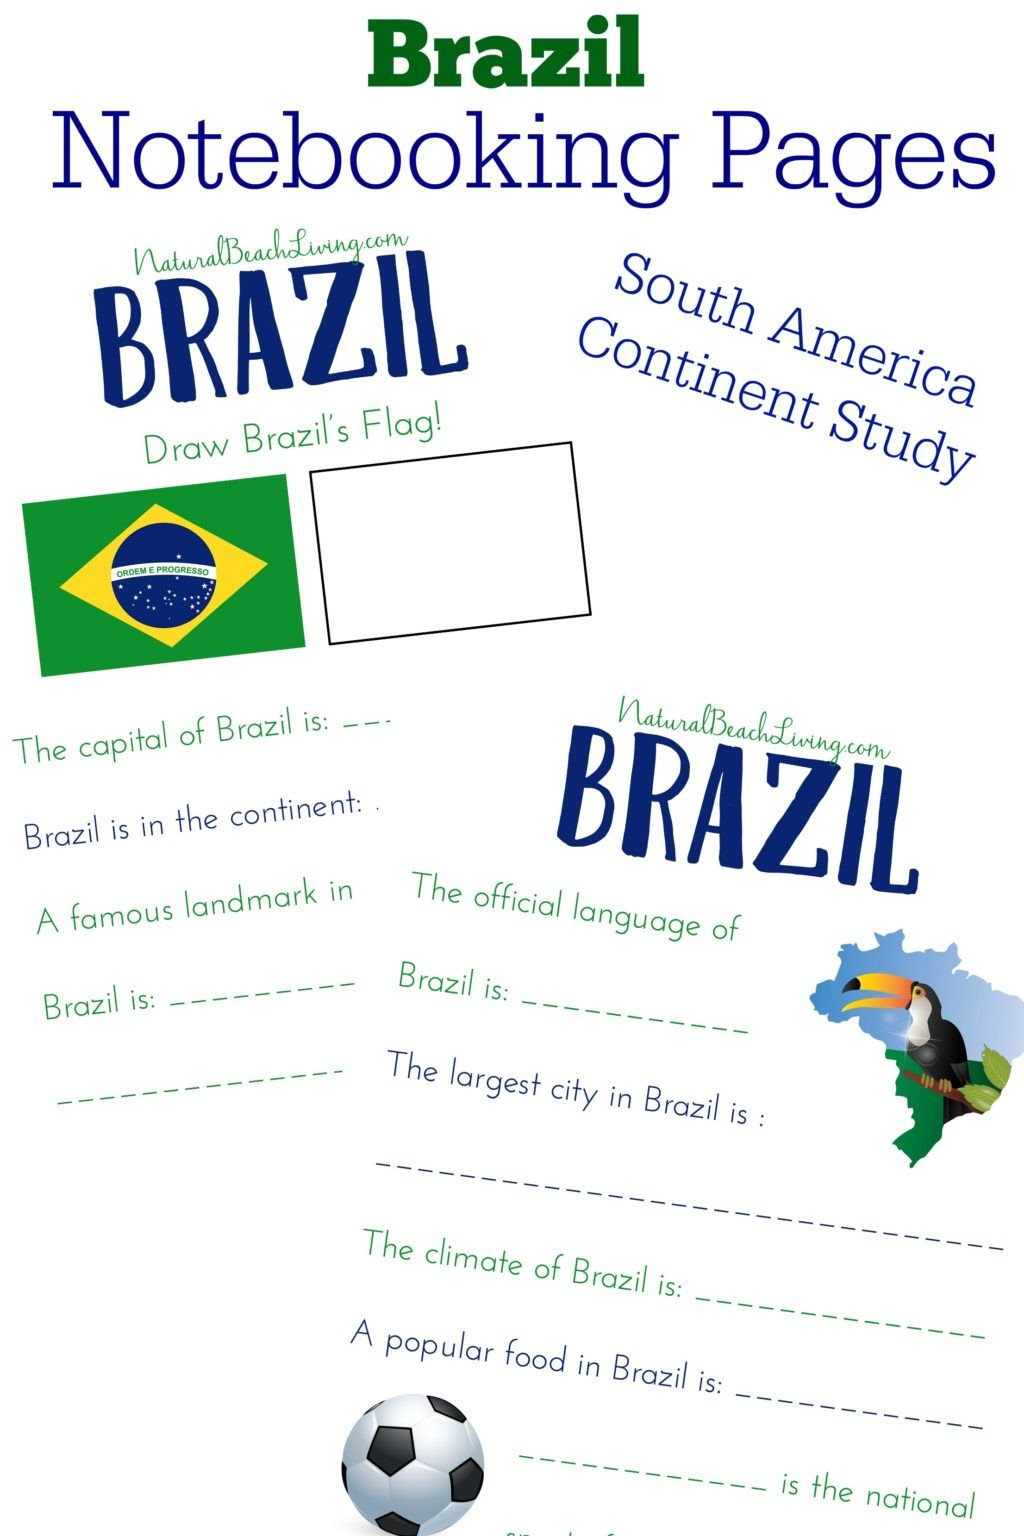 fun worksheets for kids worksheet the best rainforest activities theme natural beach living picture ideas south america brazil pin 1024x1536